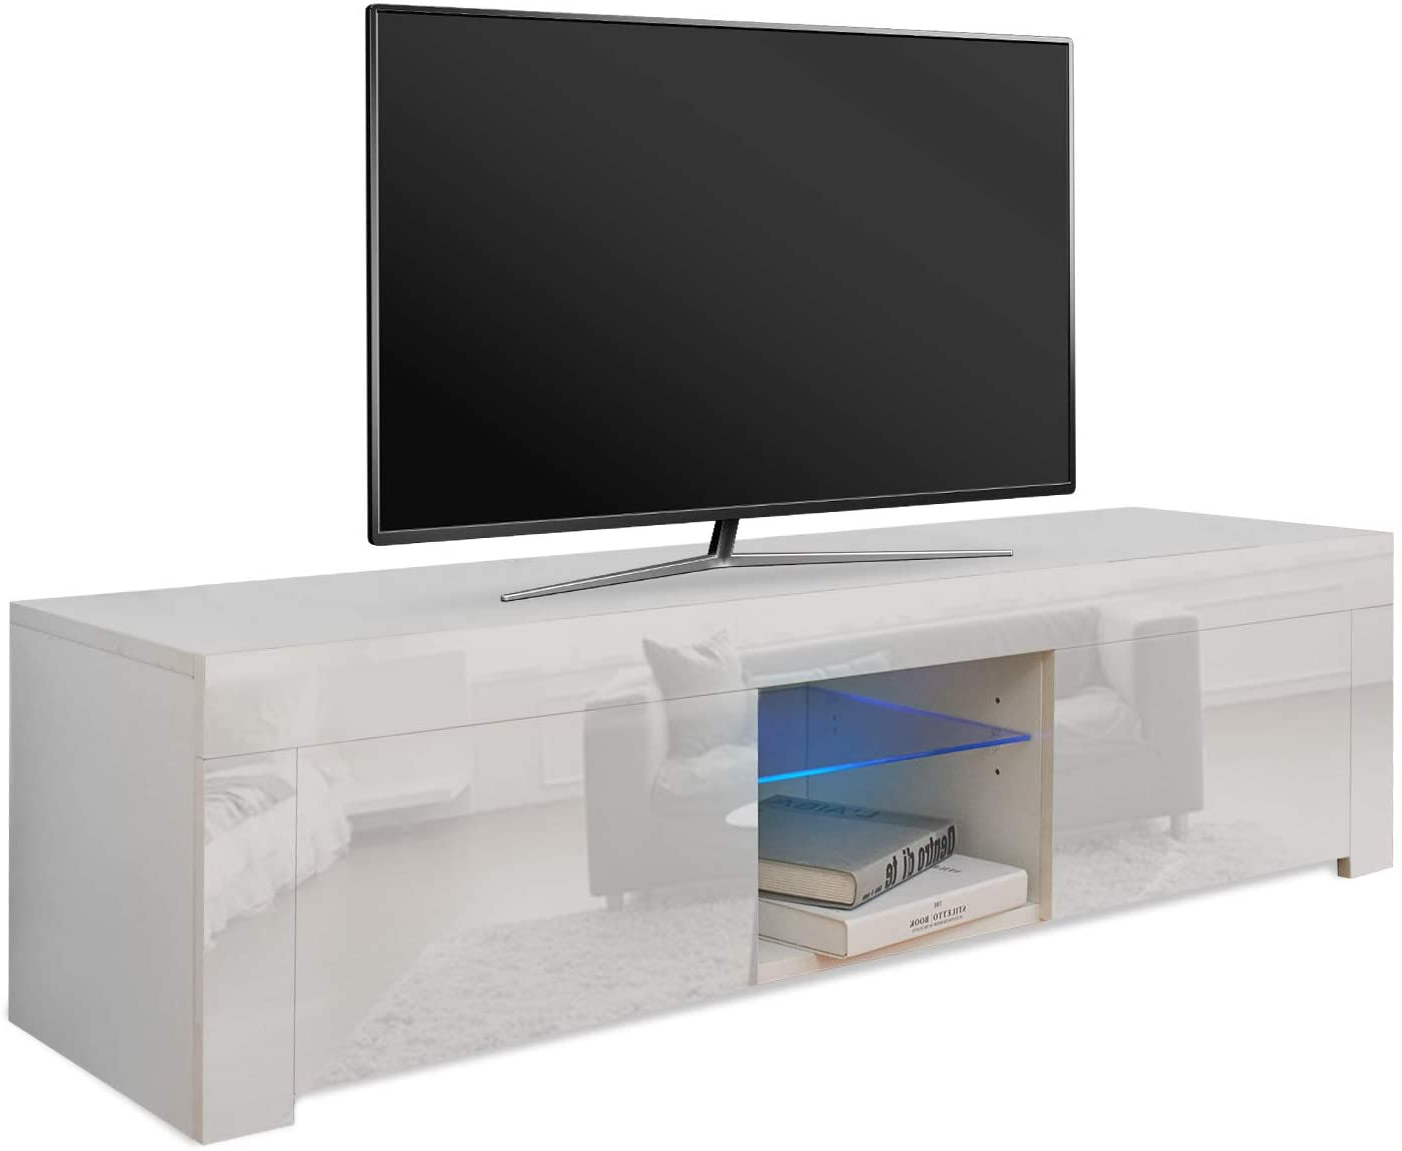 Well Liked Solo 200 Modern Led Tv Stands Pertaining To Tv Cabinet Entertainment Unit Stand Blue Led Gloss (View 4 of 10)